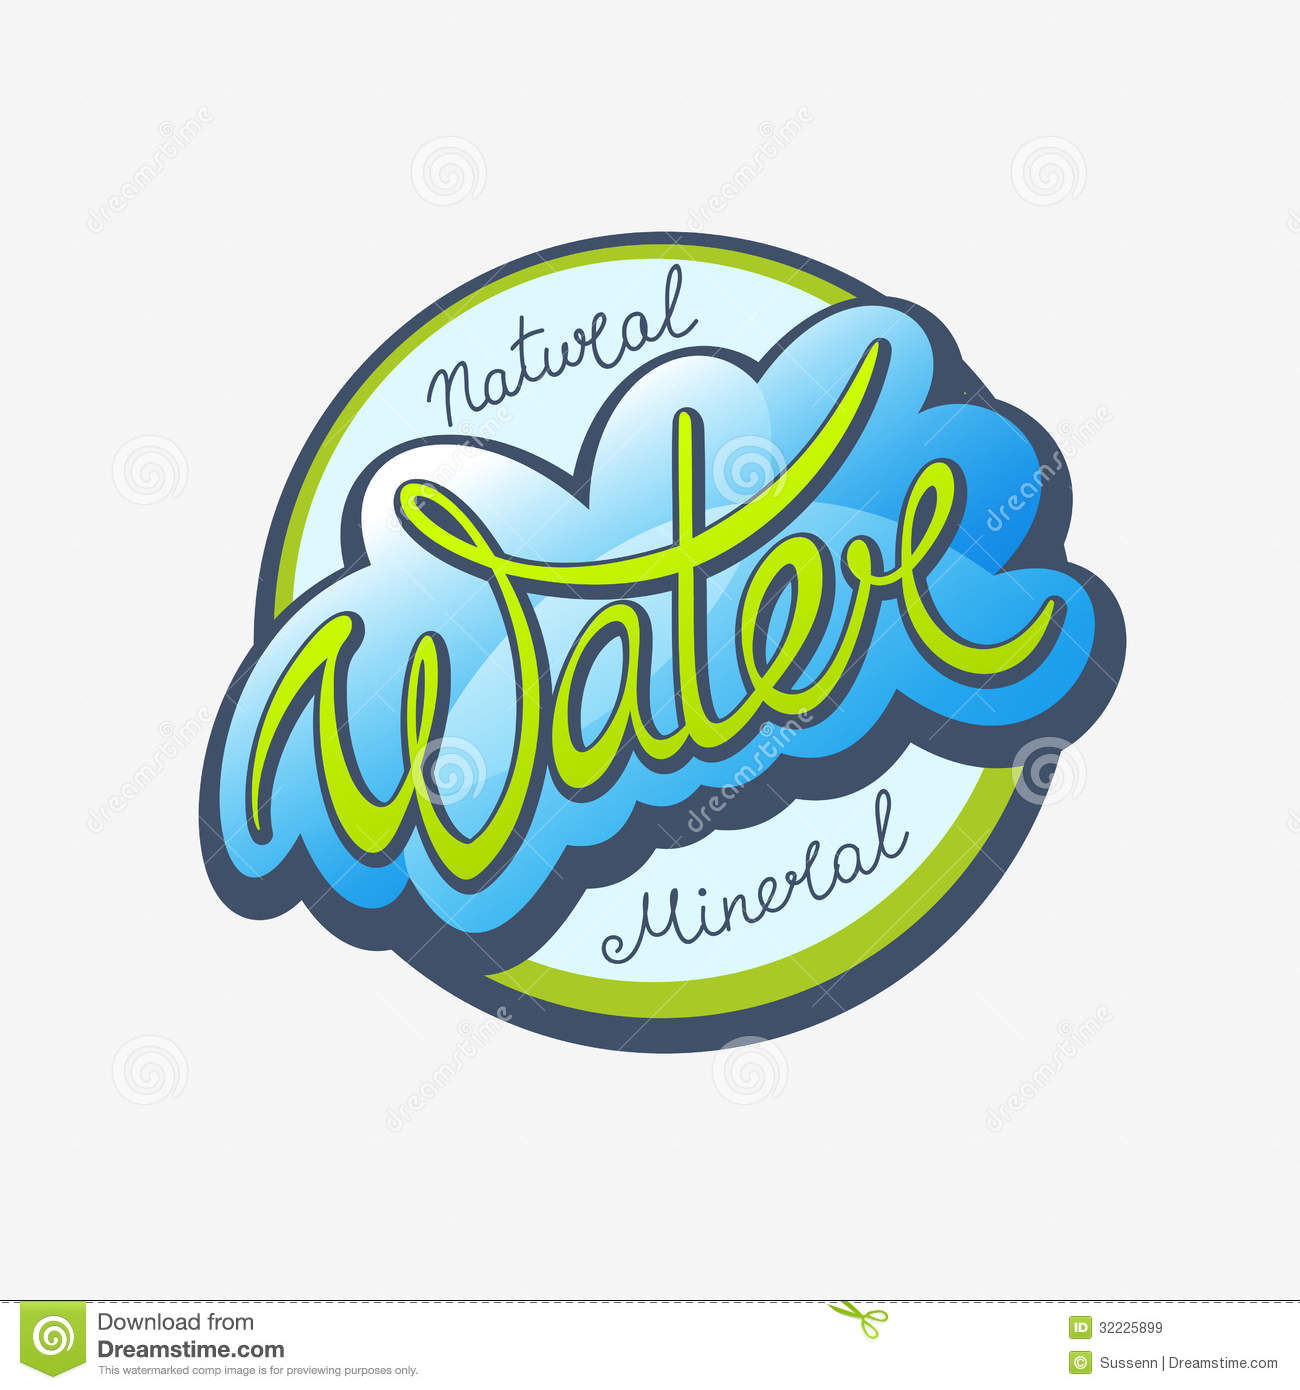 Water calligraphic label royalty free stock images image for Mineral water label template